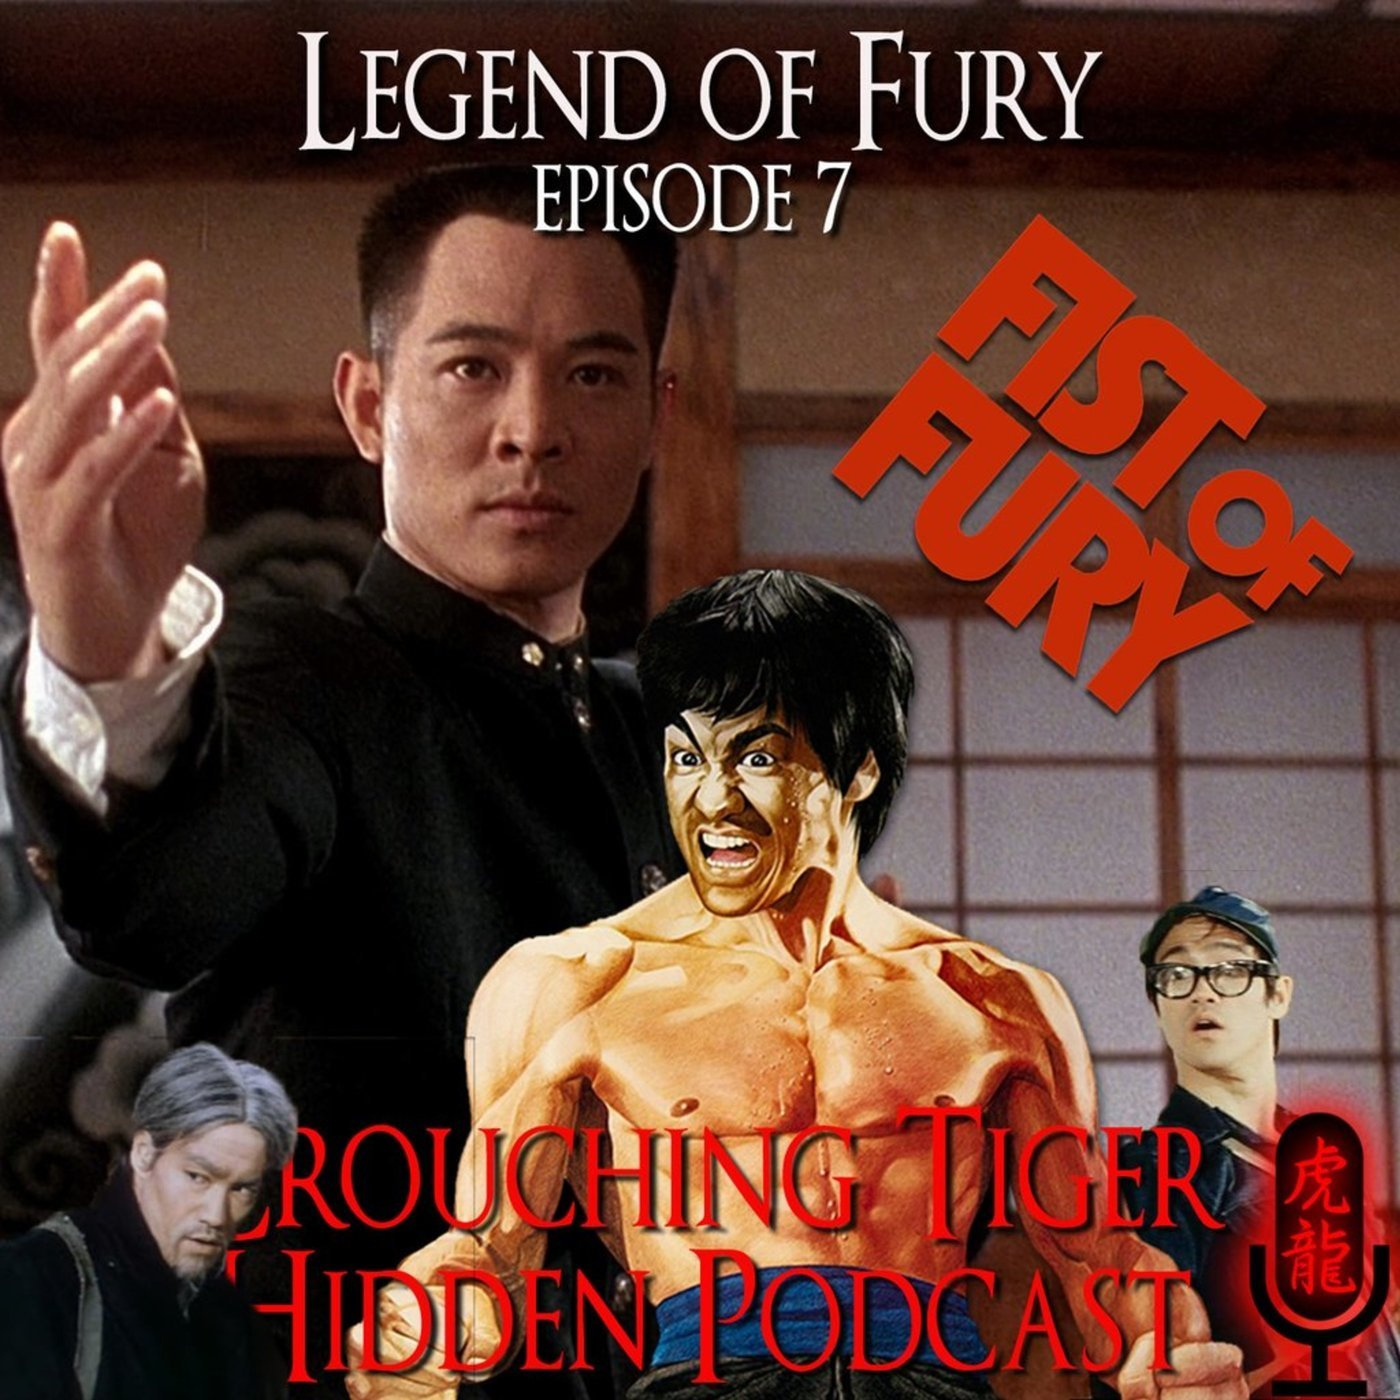 Crouching Tiger Hidden Podcast 7: Legend of Fury